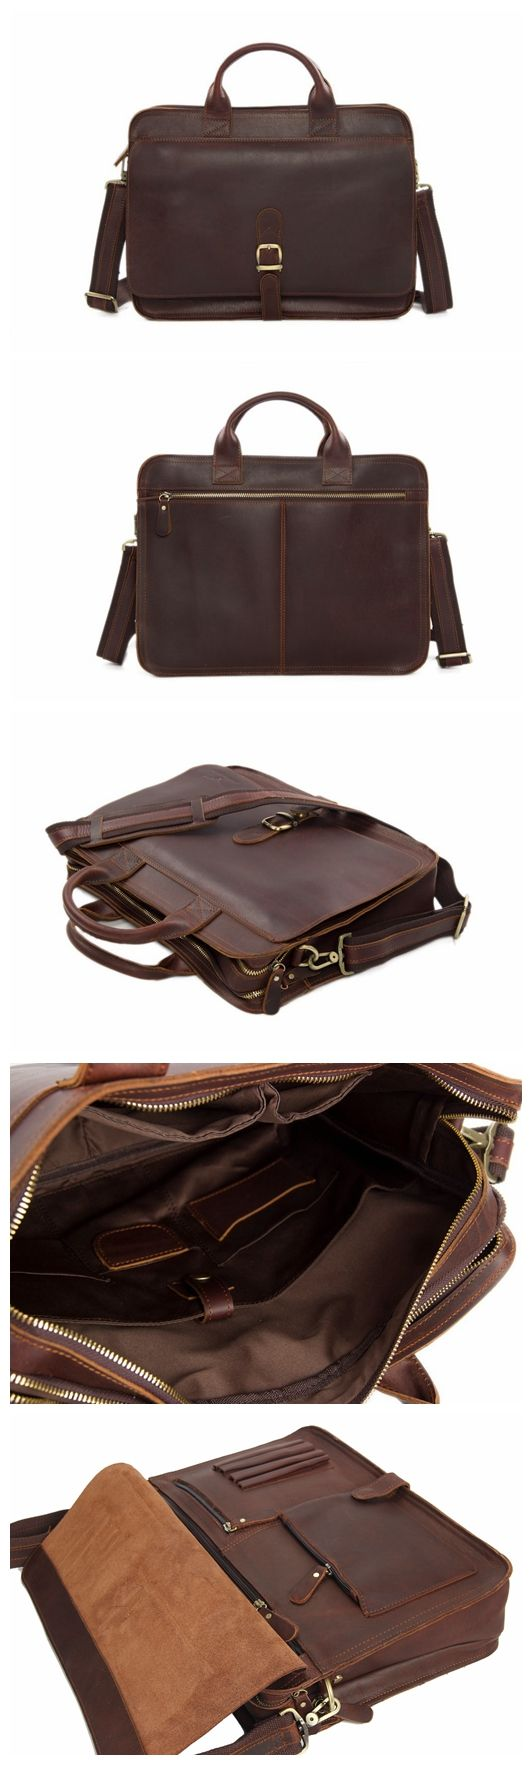 Men's Handmade Leather Briefcase Messenger Laptop Bag Men's Handbag For Christmas Gift